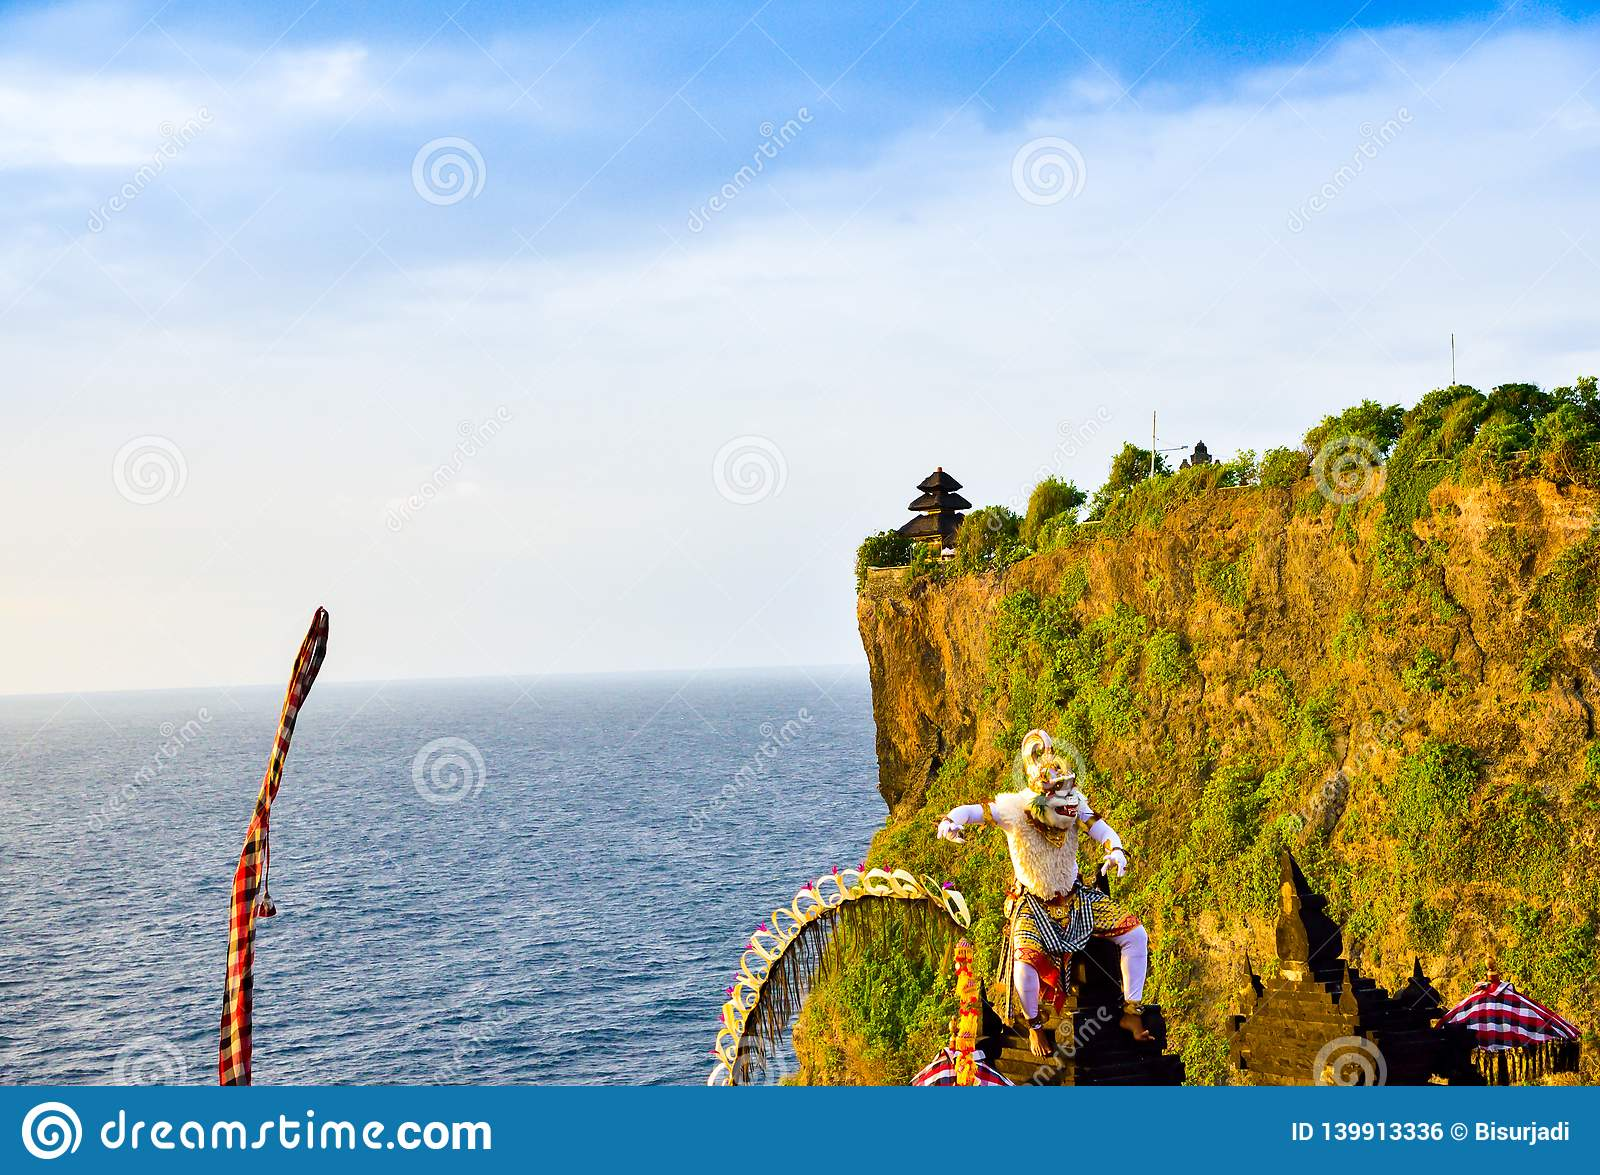 Goregeous romantic sunset at the cliff on top of the mountain with sacred temple on top and white monkey god character